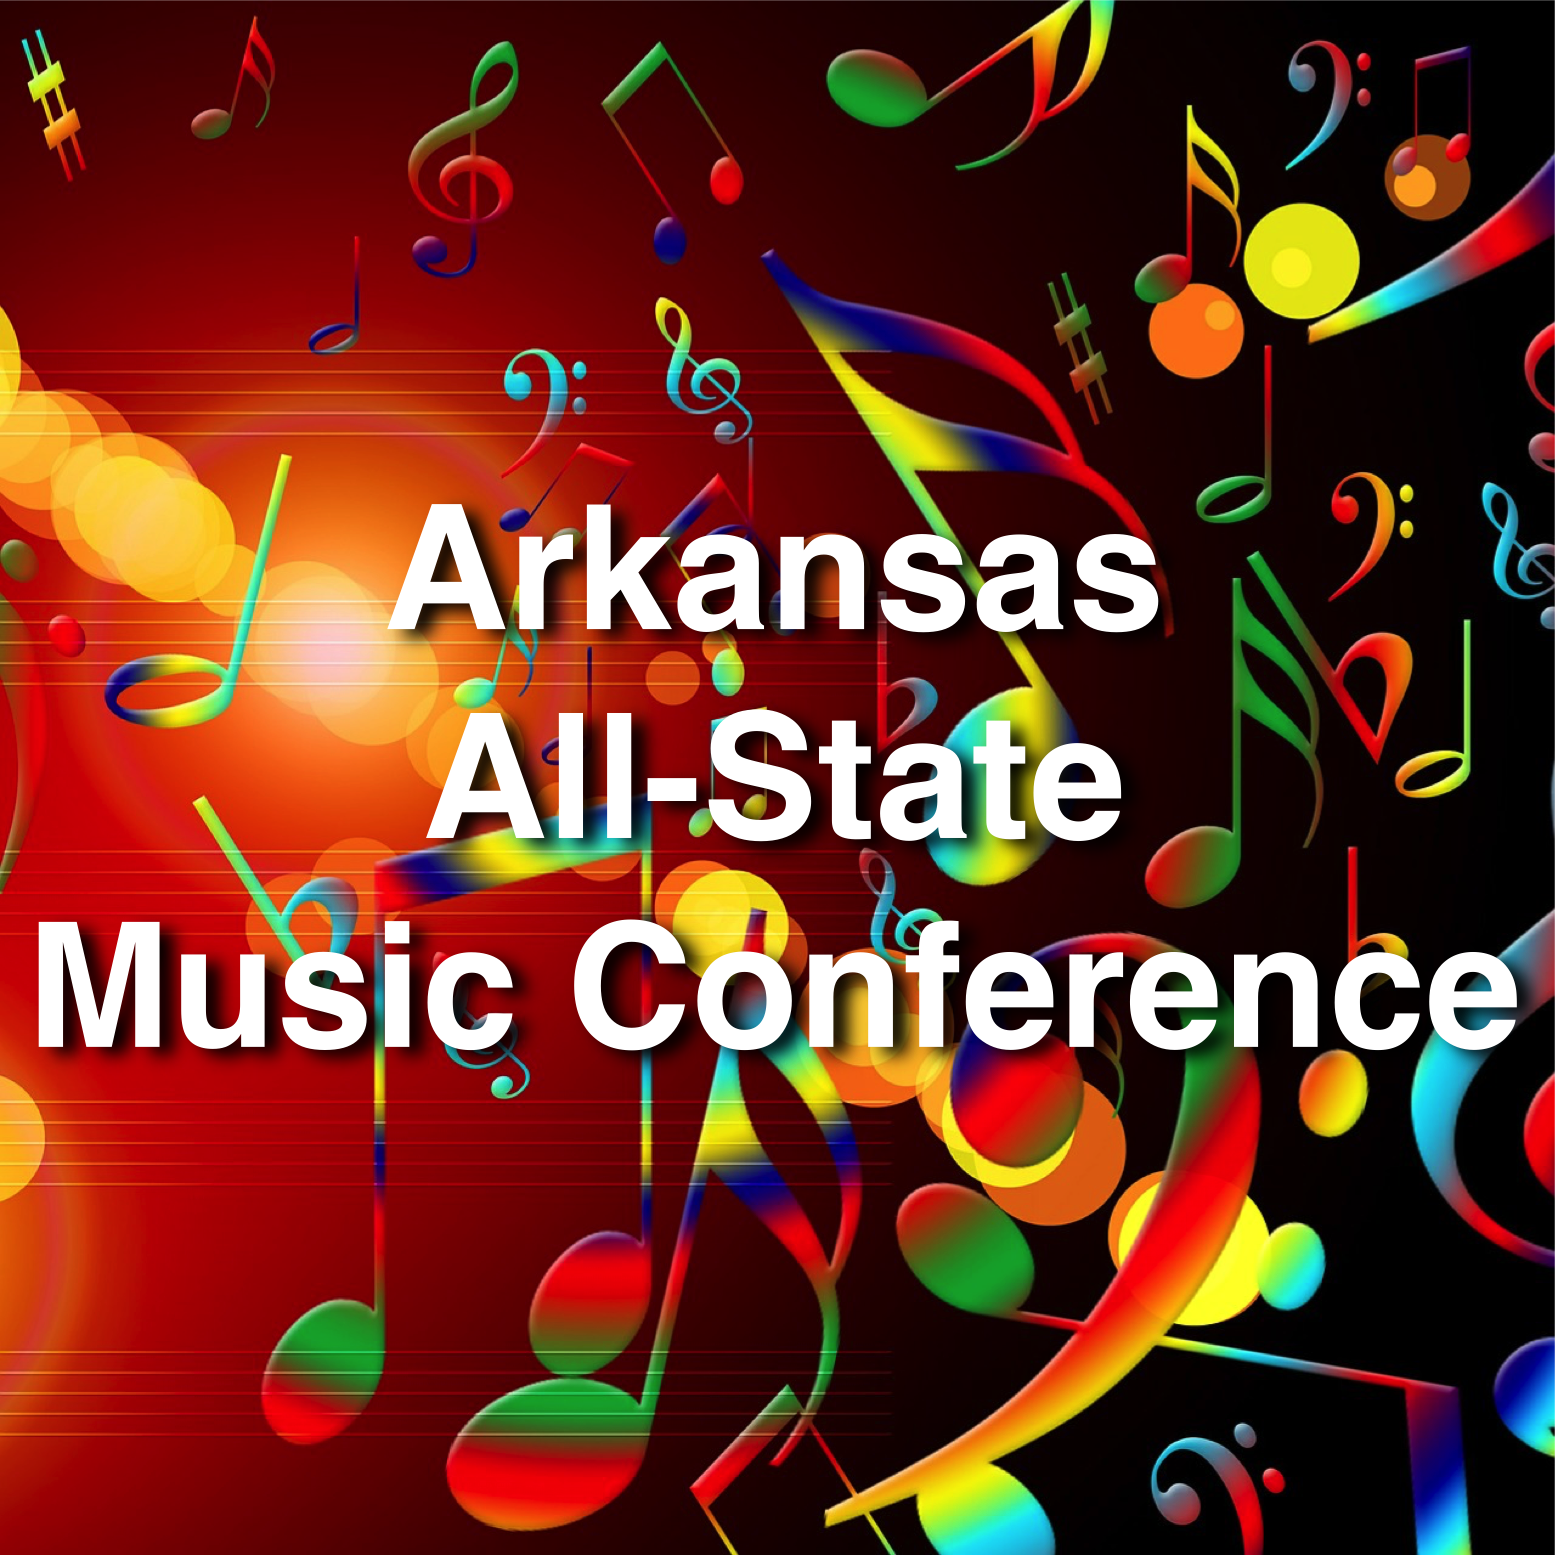 2016 Arkansas All-State Music Conference